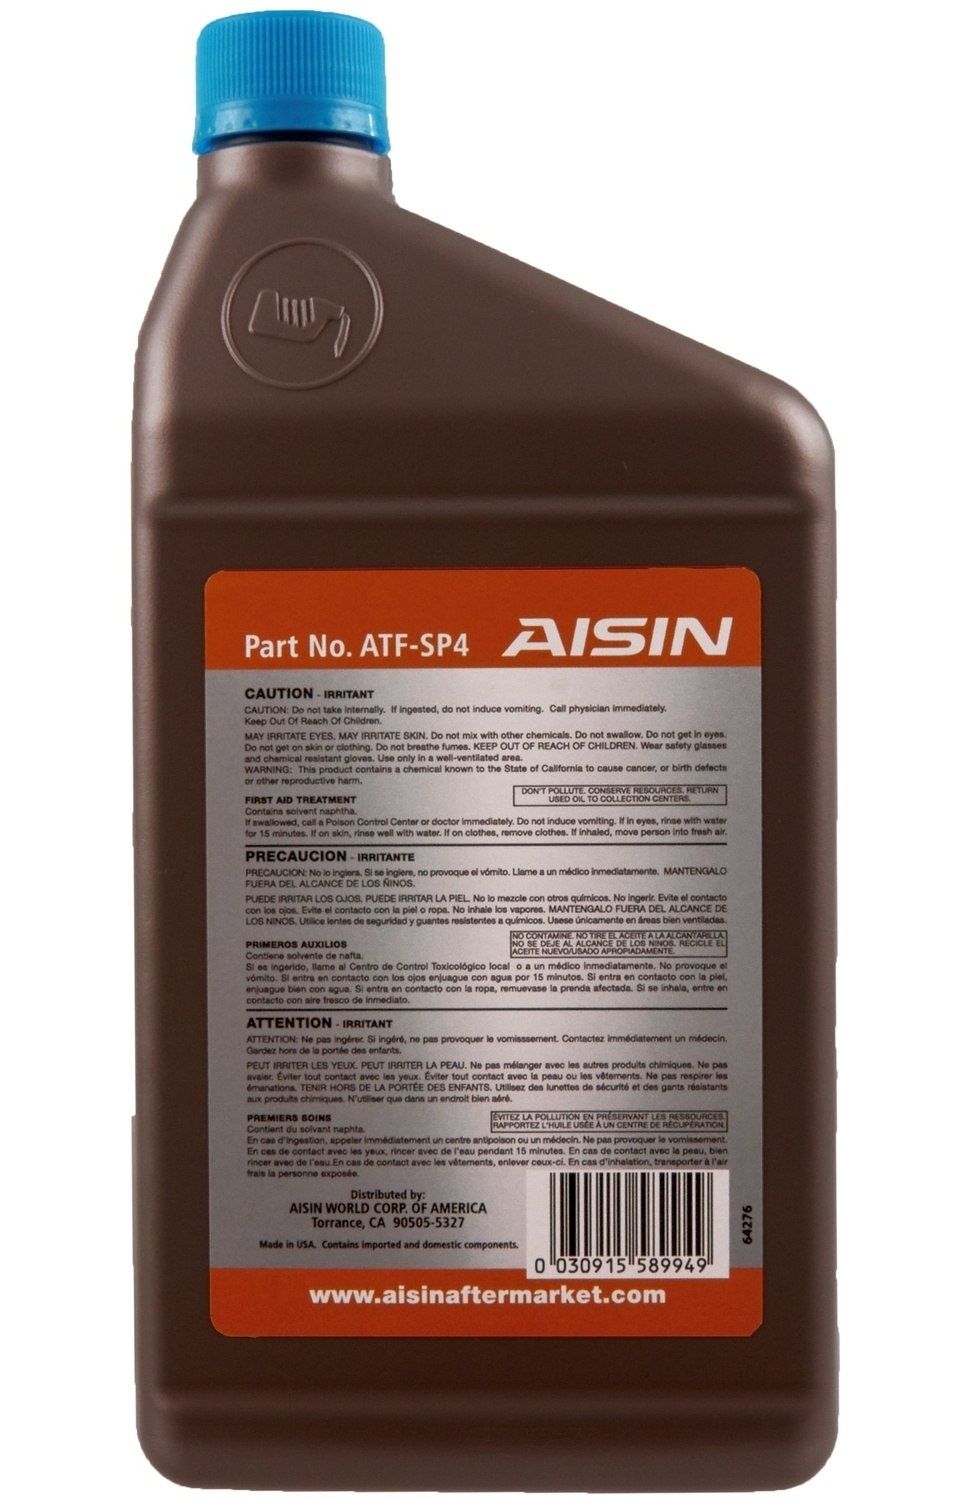 AISIN WORLD CORP. OF AMERICA - Auto Trans Fluid - AIS ATF-SP4